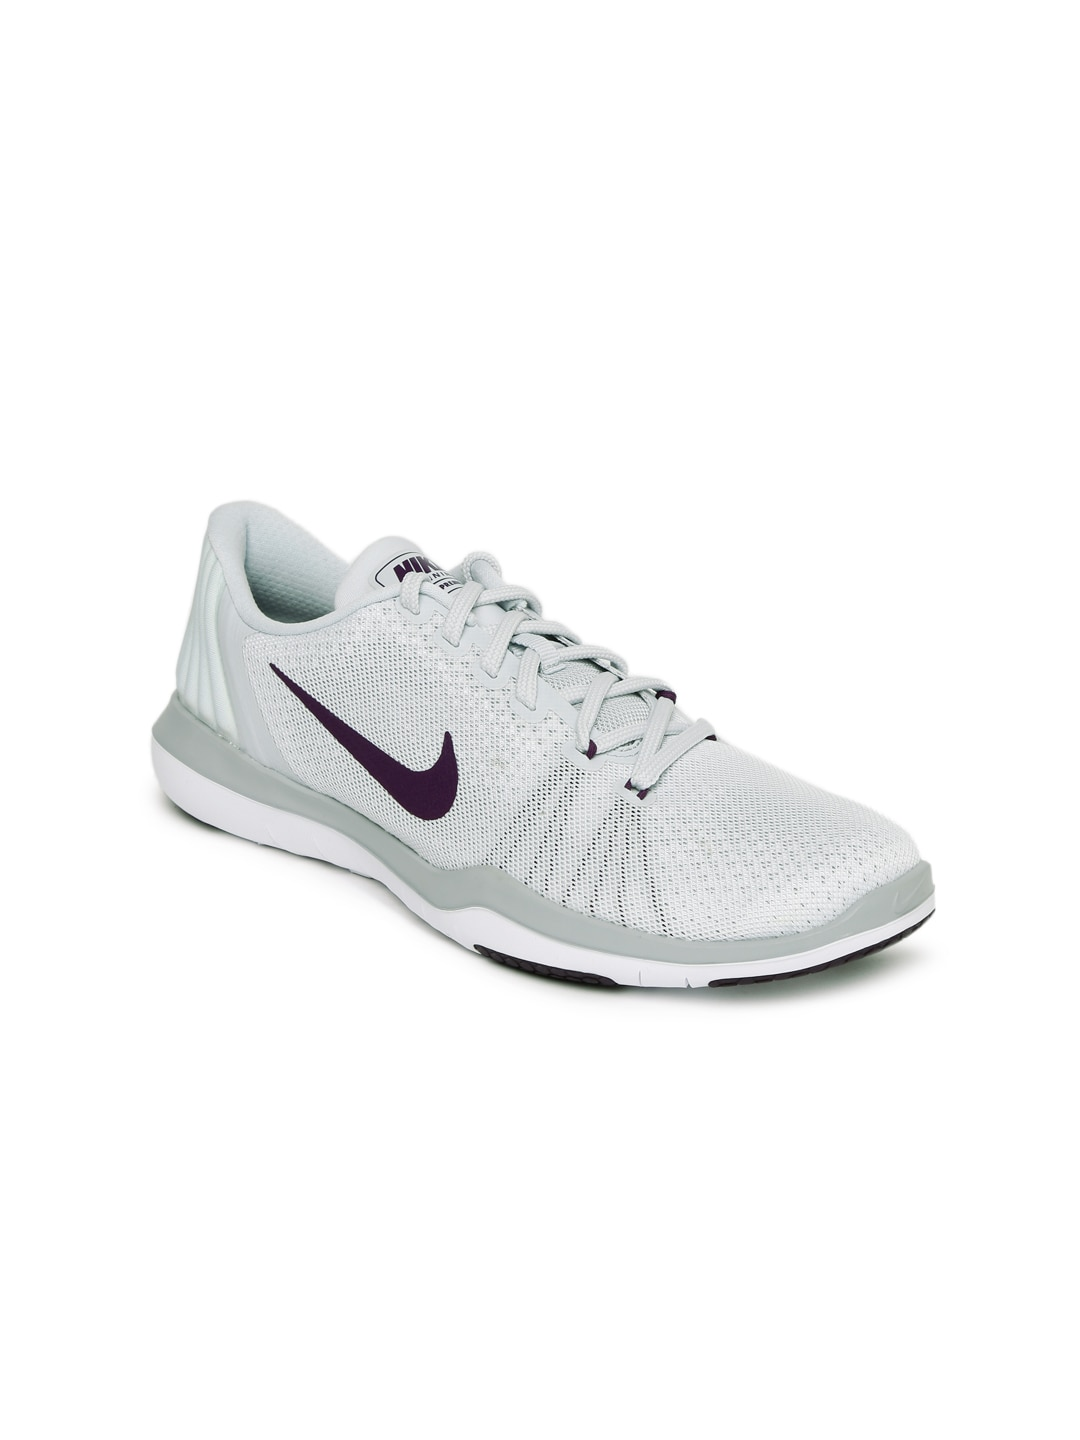 af9e4a15d7606 Nike Flex Supreme Tr 5 White Training Shoes for women - Get stylish ...